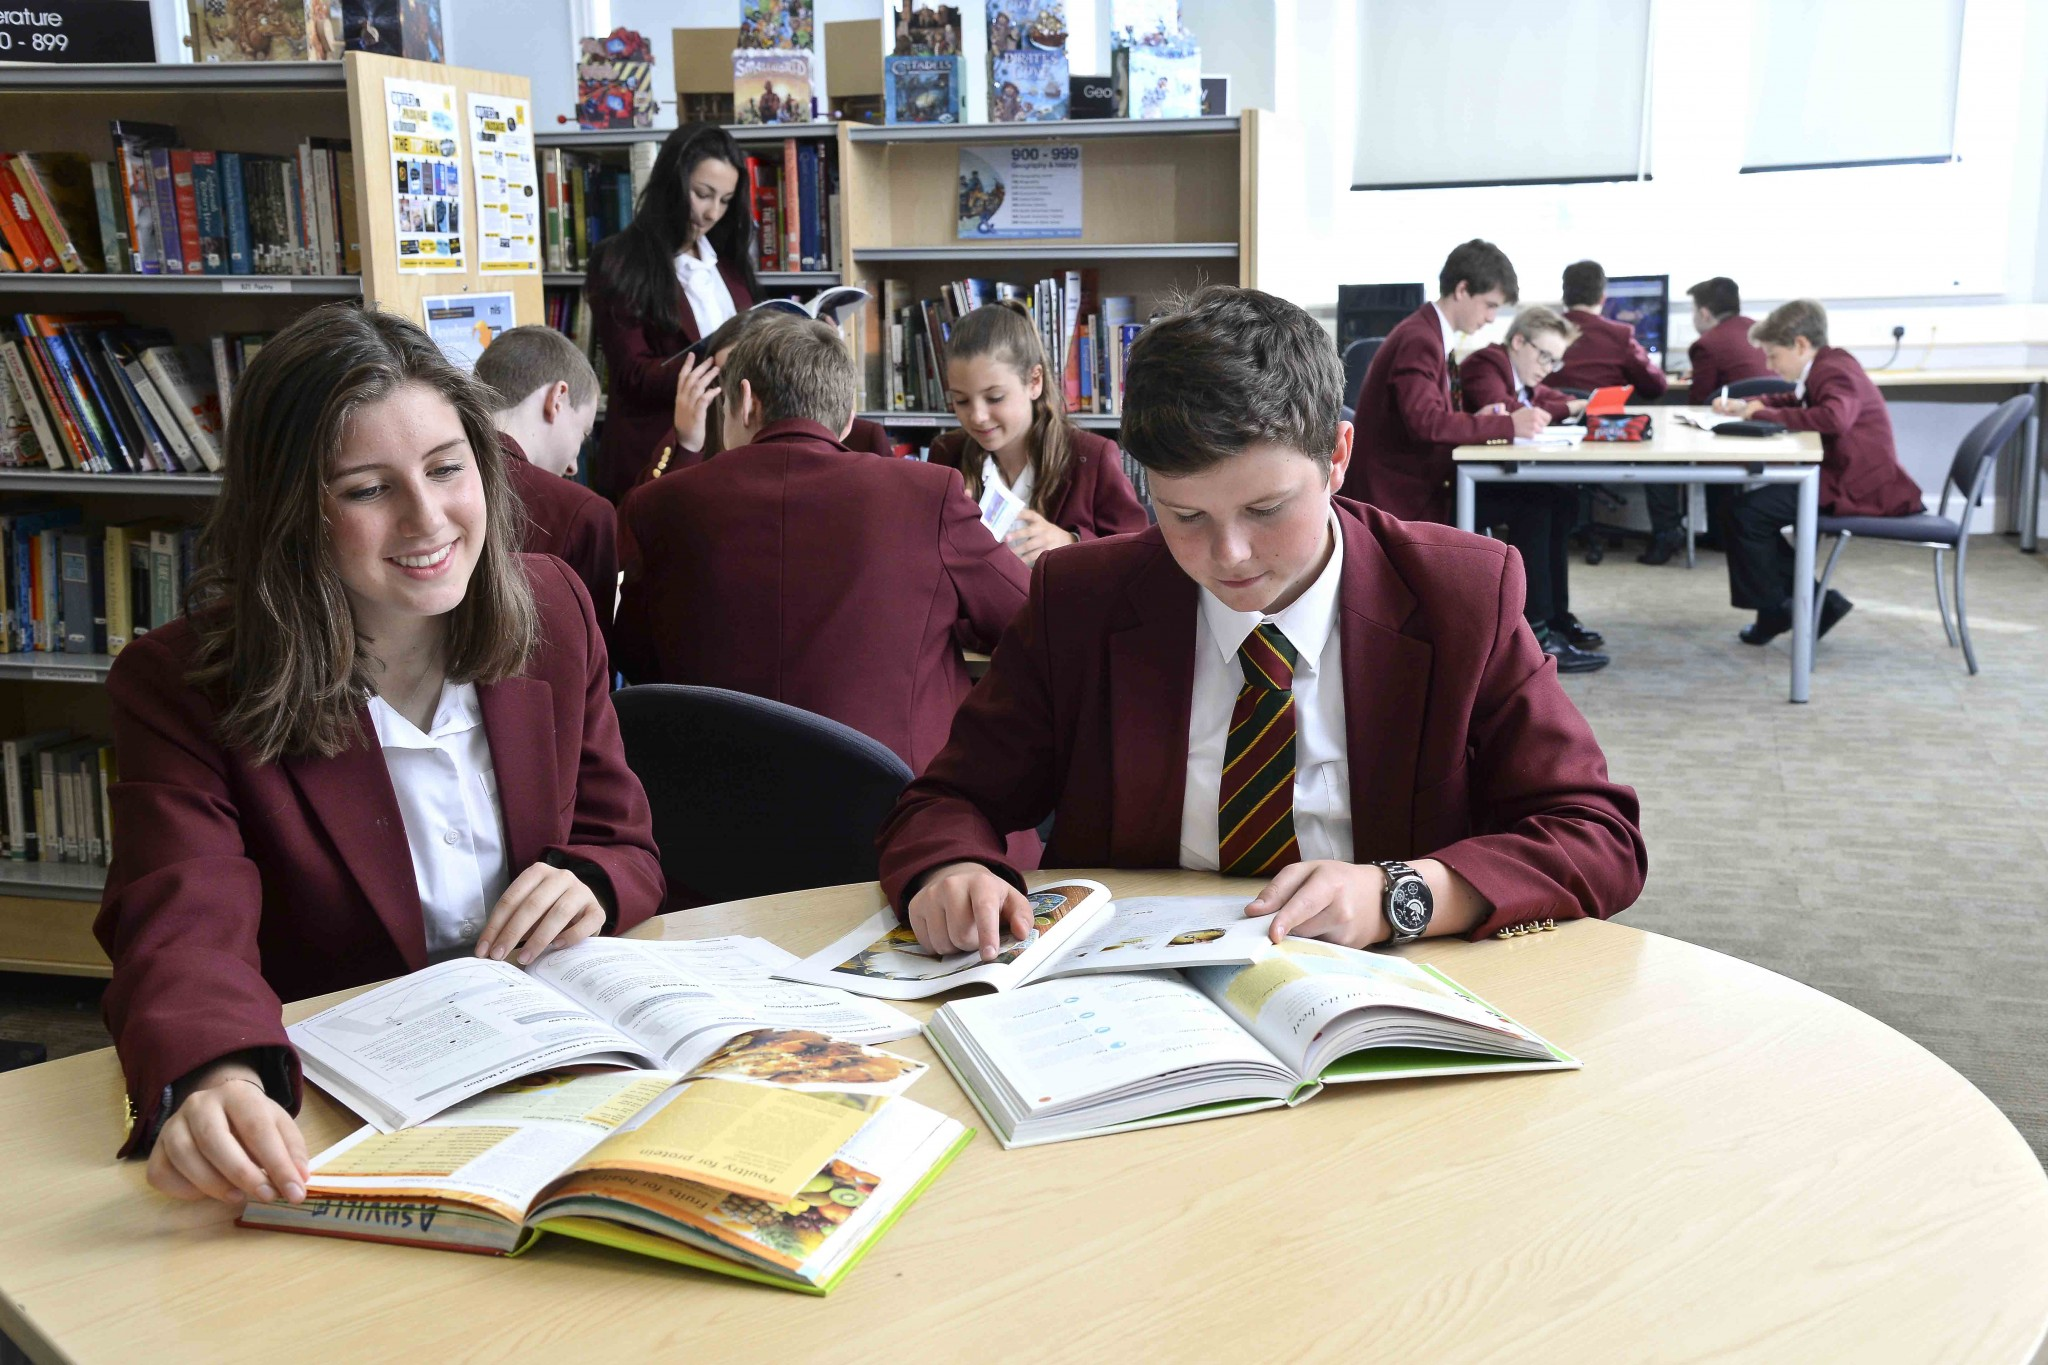 A day in the life of an international boarding school student